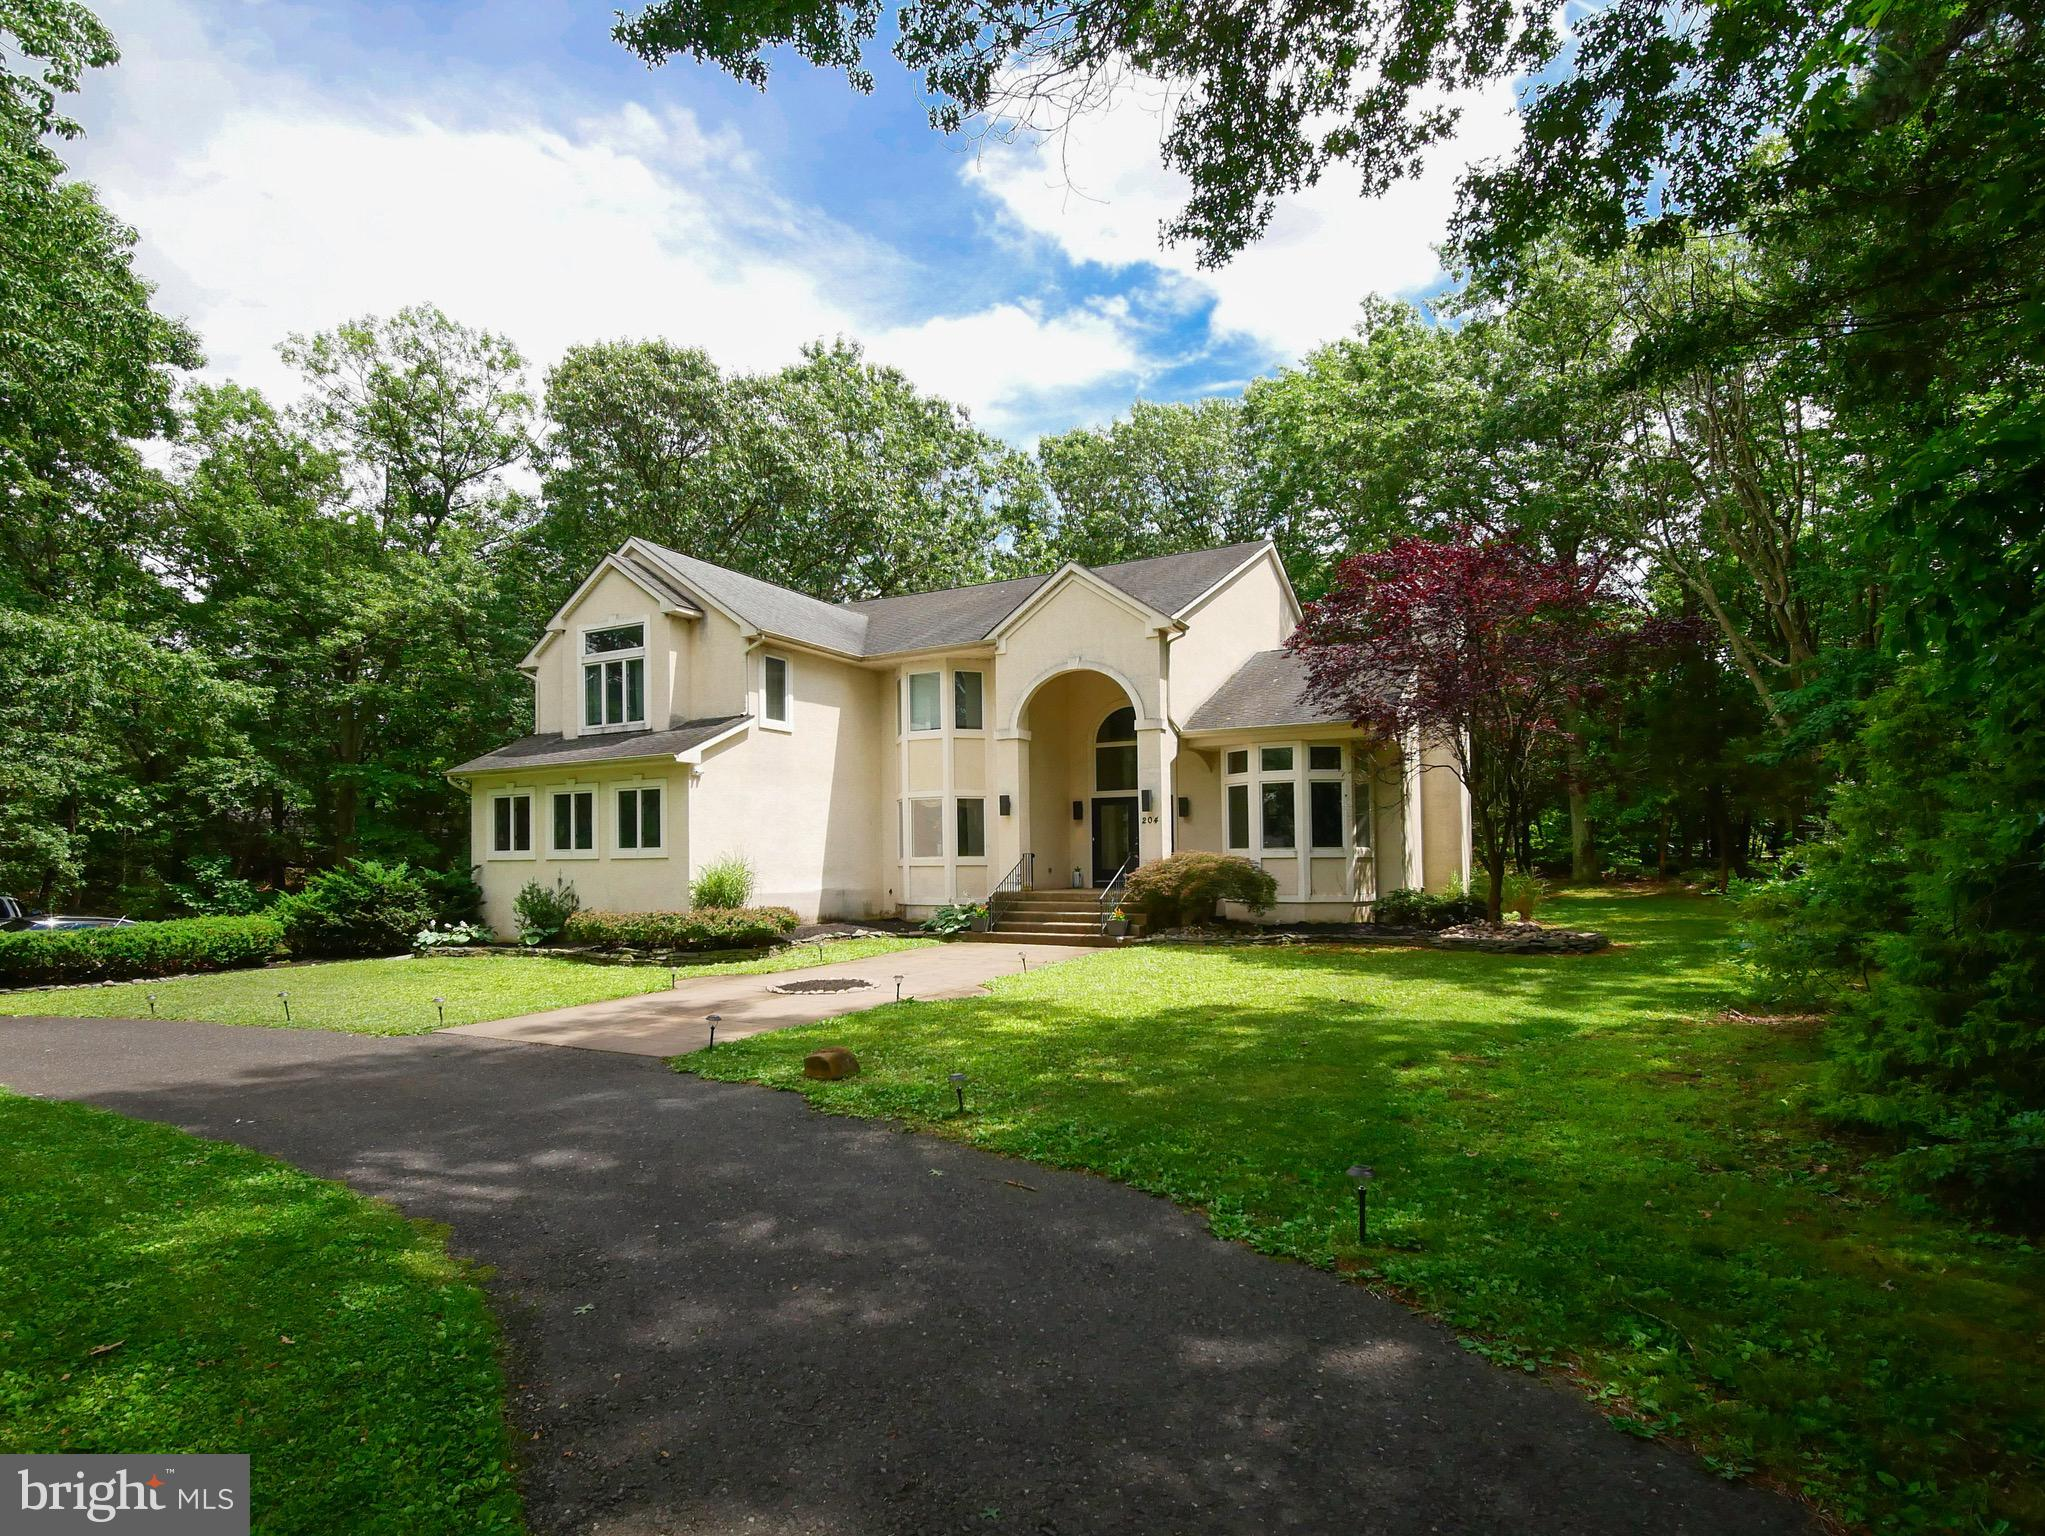 204 SCARLET OAK ROAD, BLACKWOOD, NJ 08012